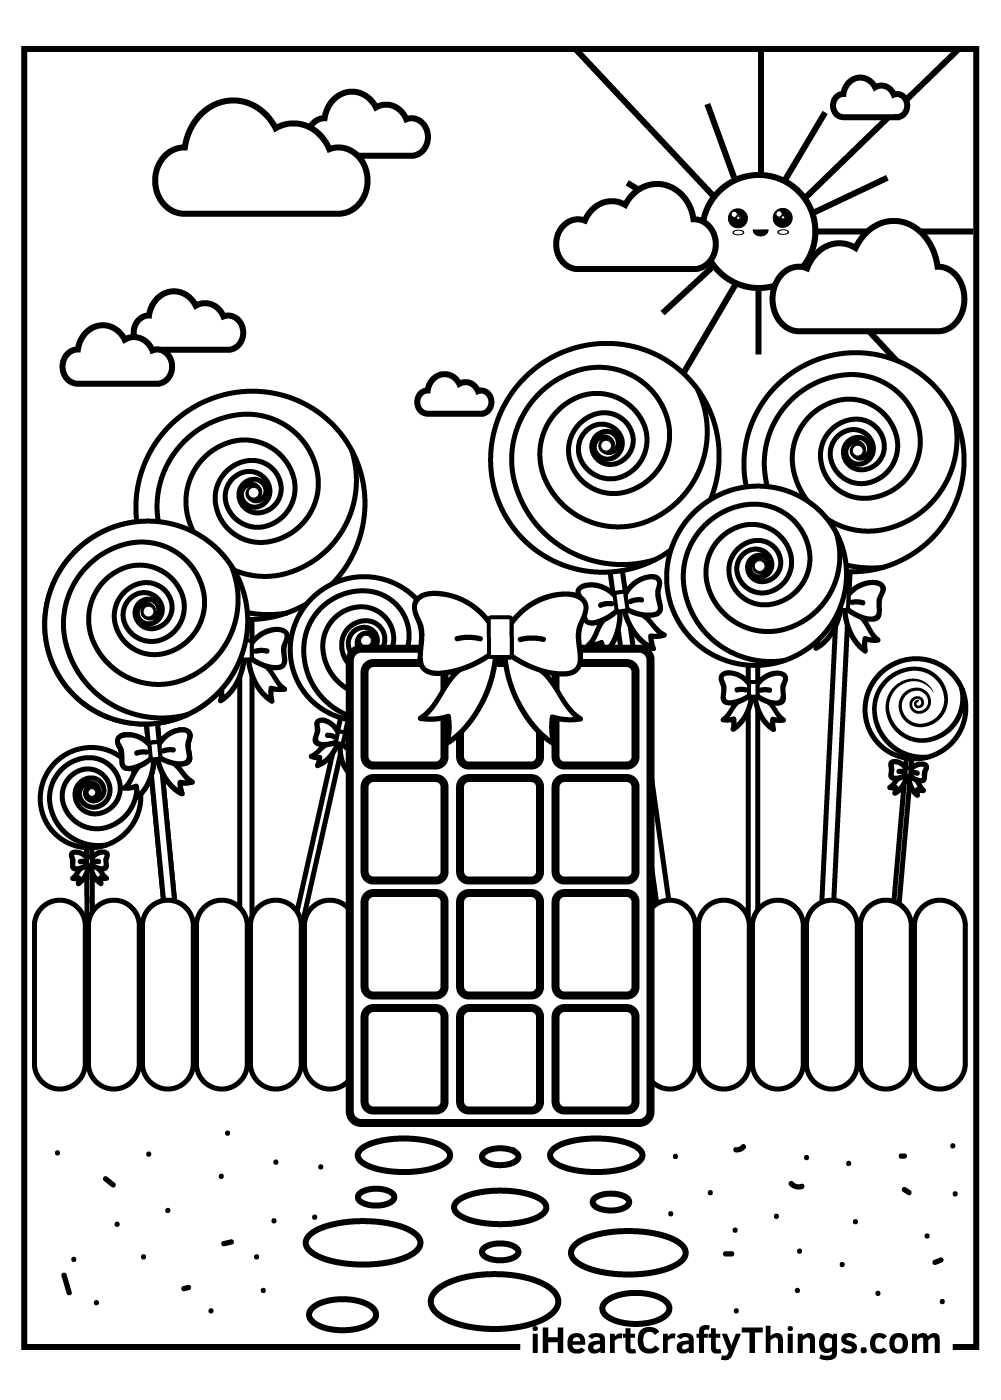 free candy printable